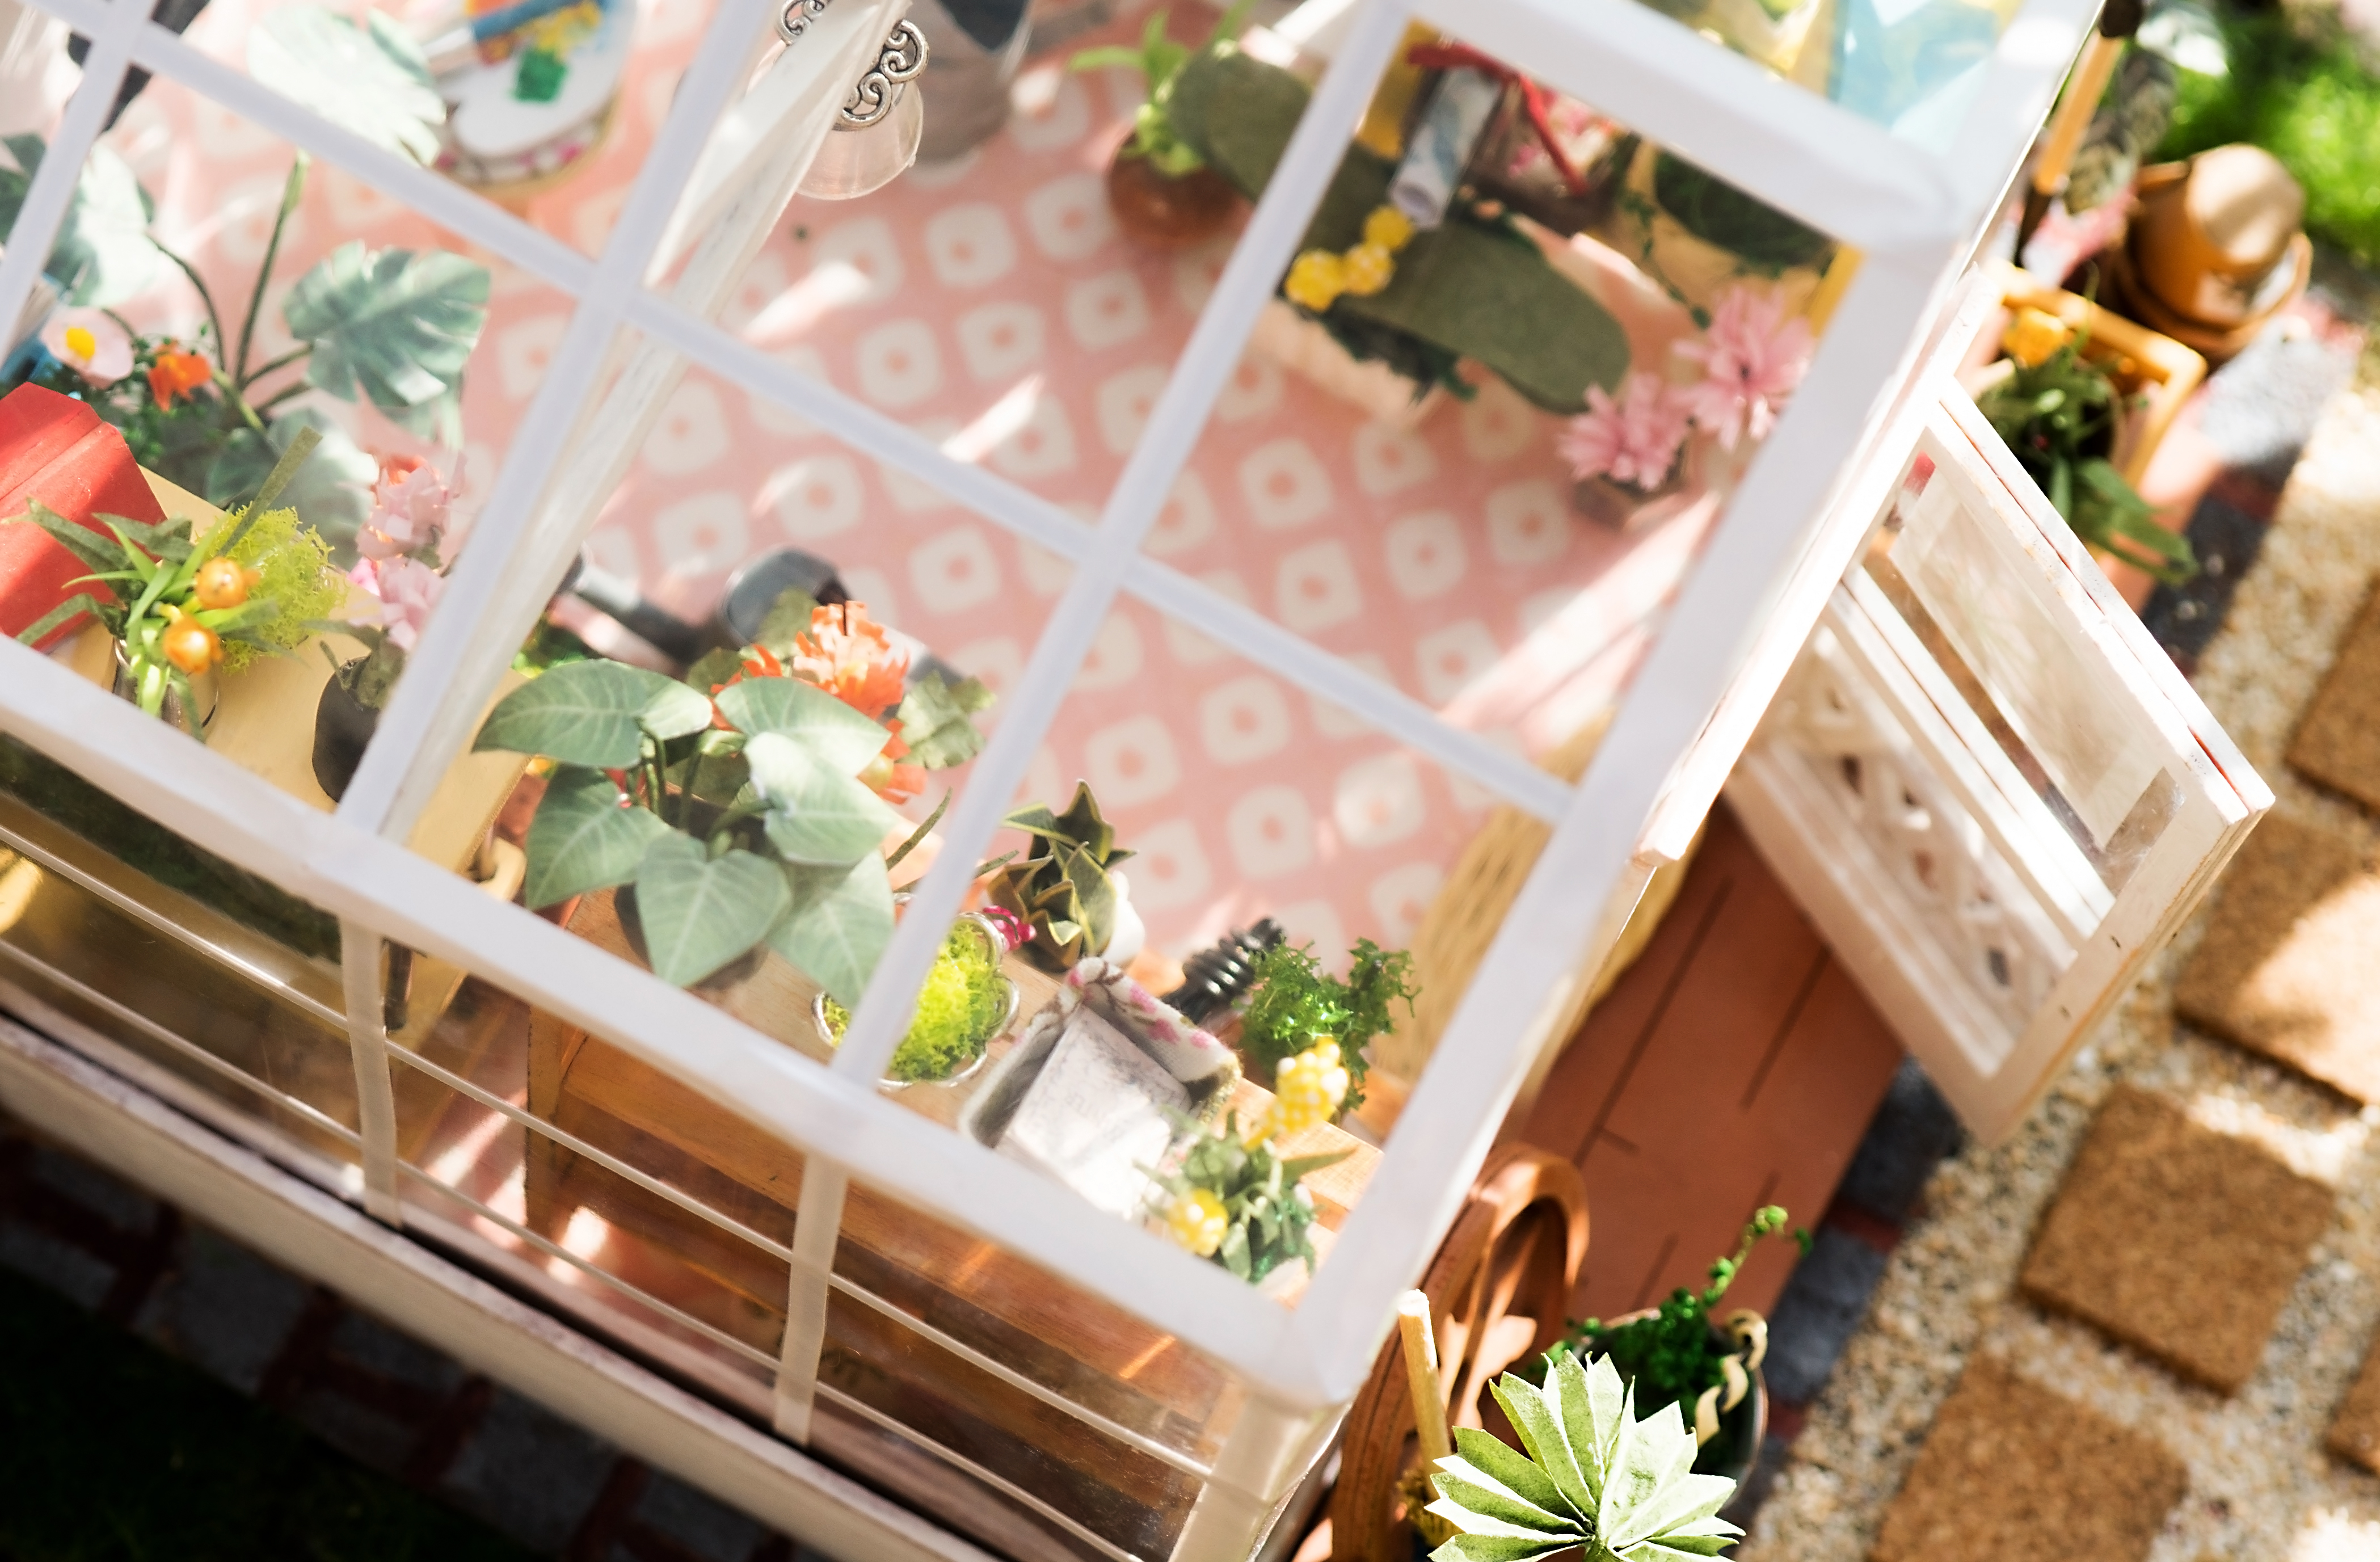 Diy Dollhouse Kit Miniature Greenhouse Cathys Flower House Wiring Today Im Showing You A New I Received From Robotime Its Their Houses Series Since